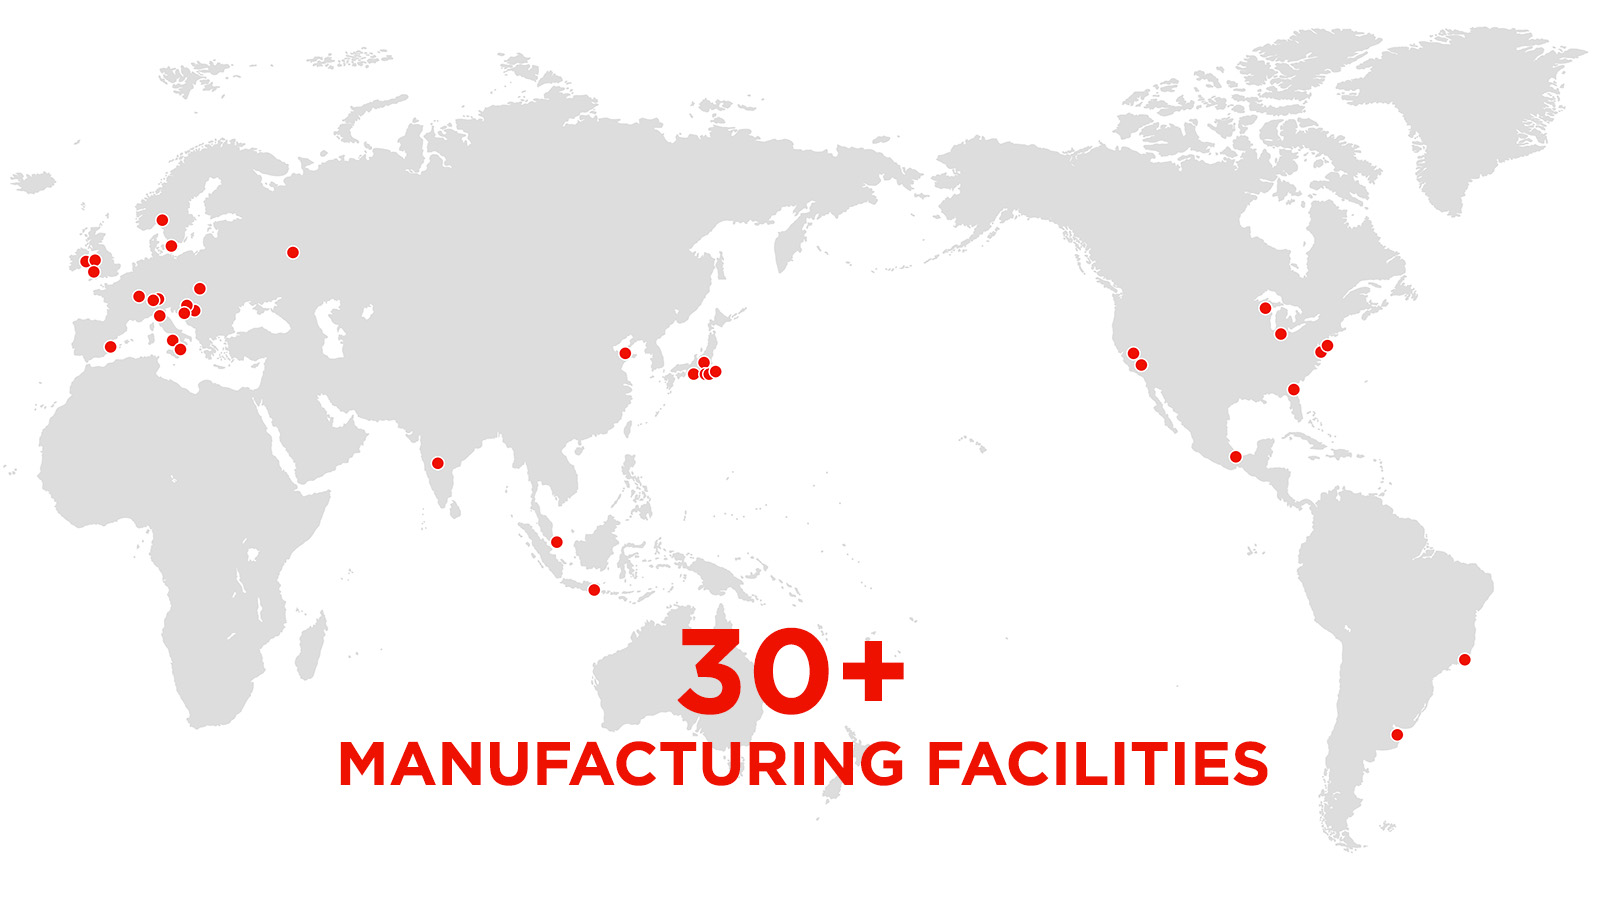 30+_manufacturing_facilities.jpg